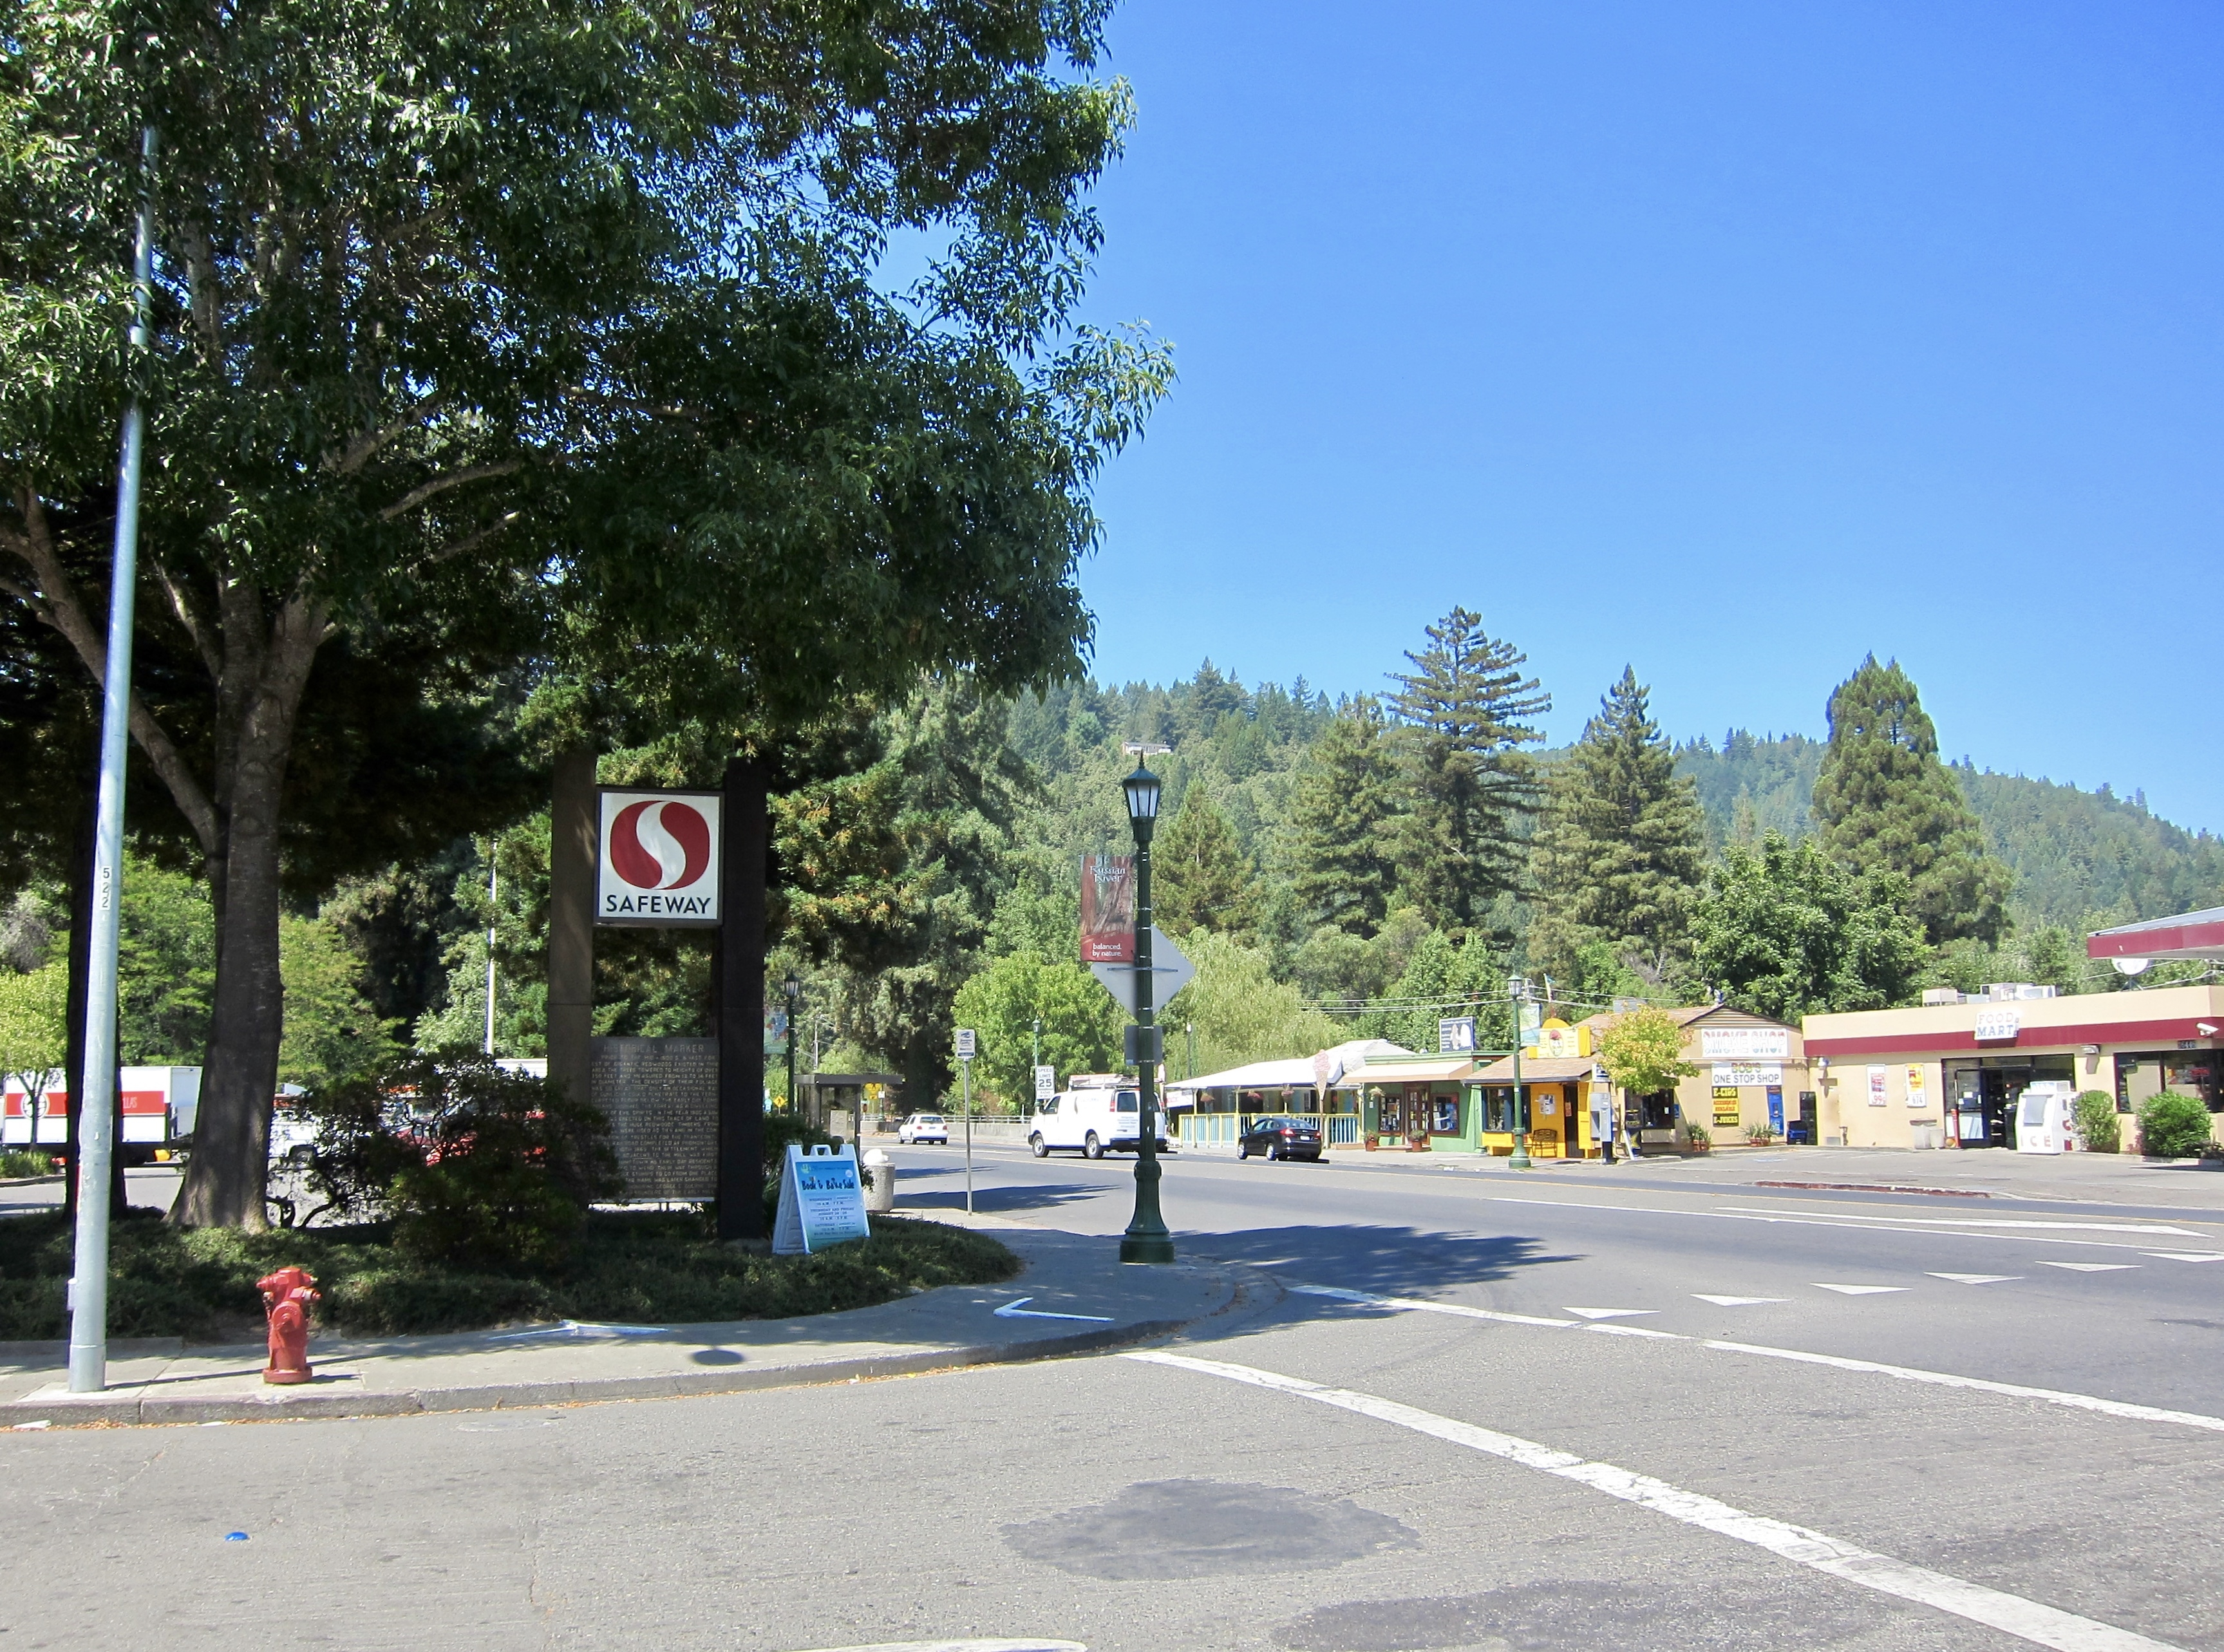 Guerneville Historical Marker Marker - Wide View, Looking West